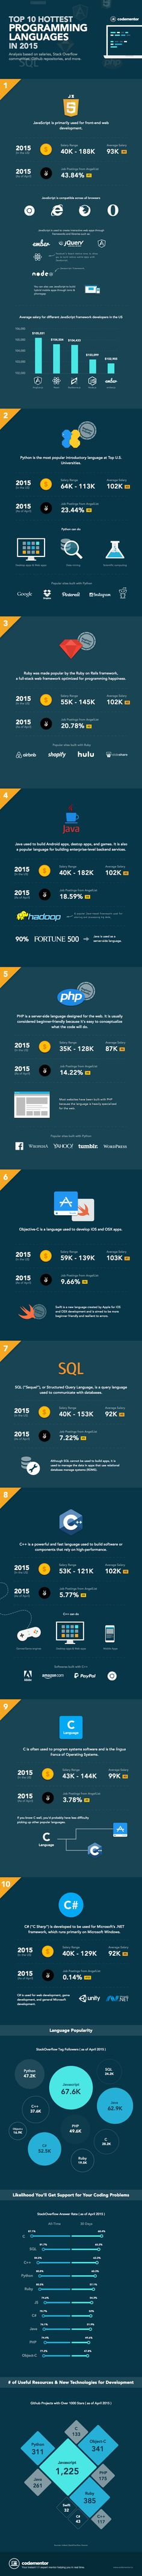 Programmers in the US earn about 2.5 times as much the national average salary, and it's no secret that the job growth for software developers is much faster than the average as well. Whether you are interested in learning how to program out of sheer interest or because of the career opportunities or both, you'd need to learn a language first. This infographic is based on this in-depth analysis, and it will provide you a quick overview of the top 10 most popular programming languages to...